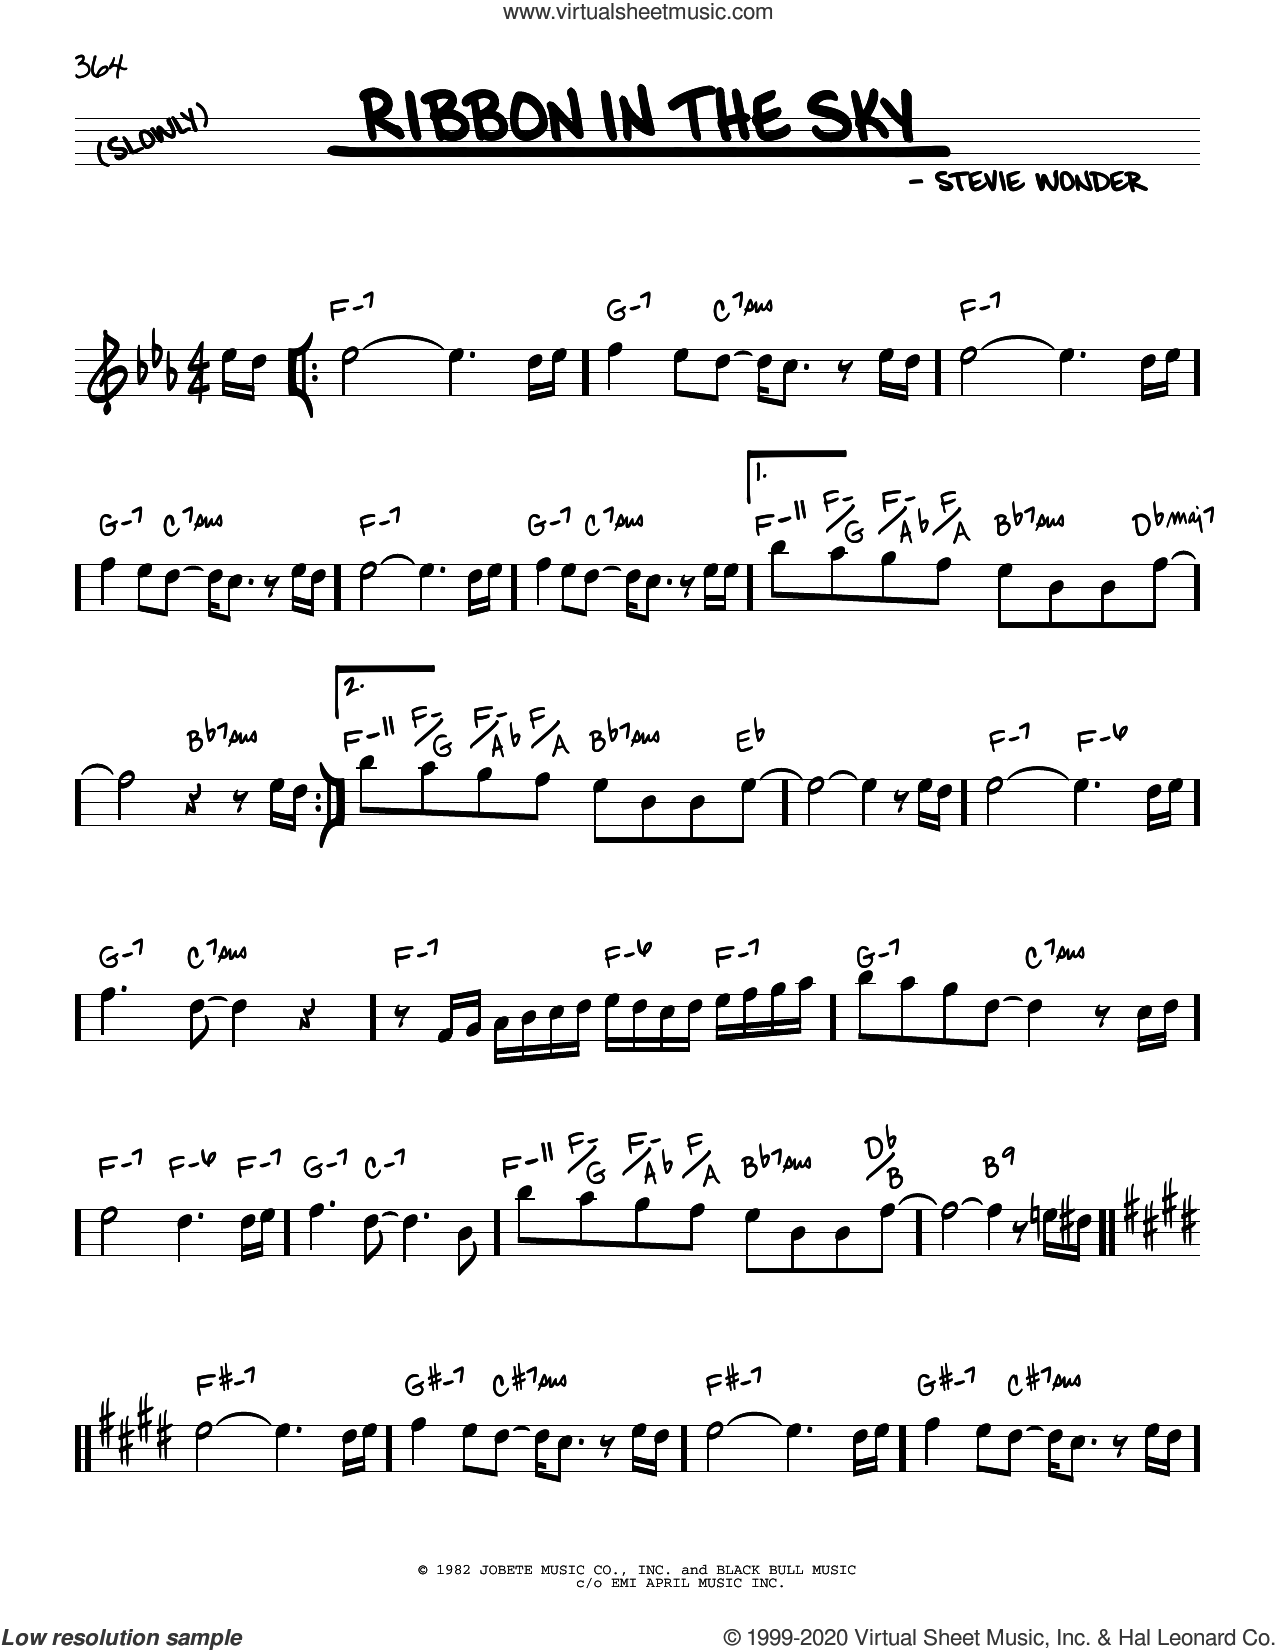 Ribbon In The Sky sheet music for voice and other instruments (real book) by Stevie Wonder, intermediate skill level